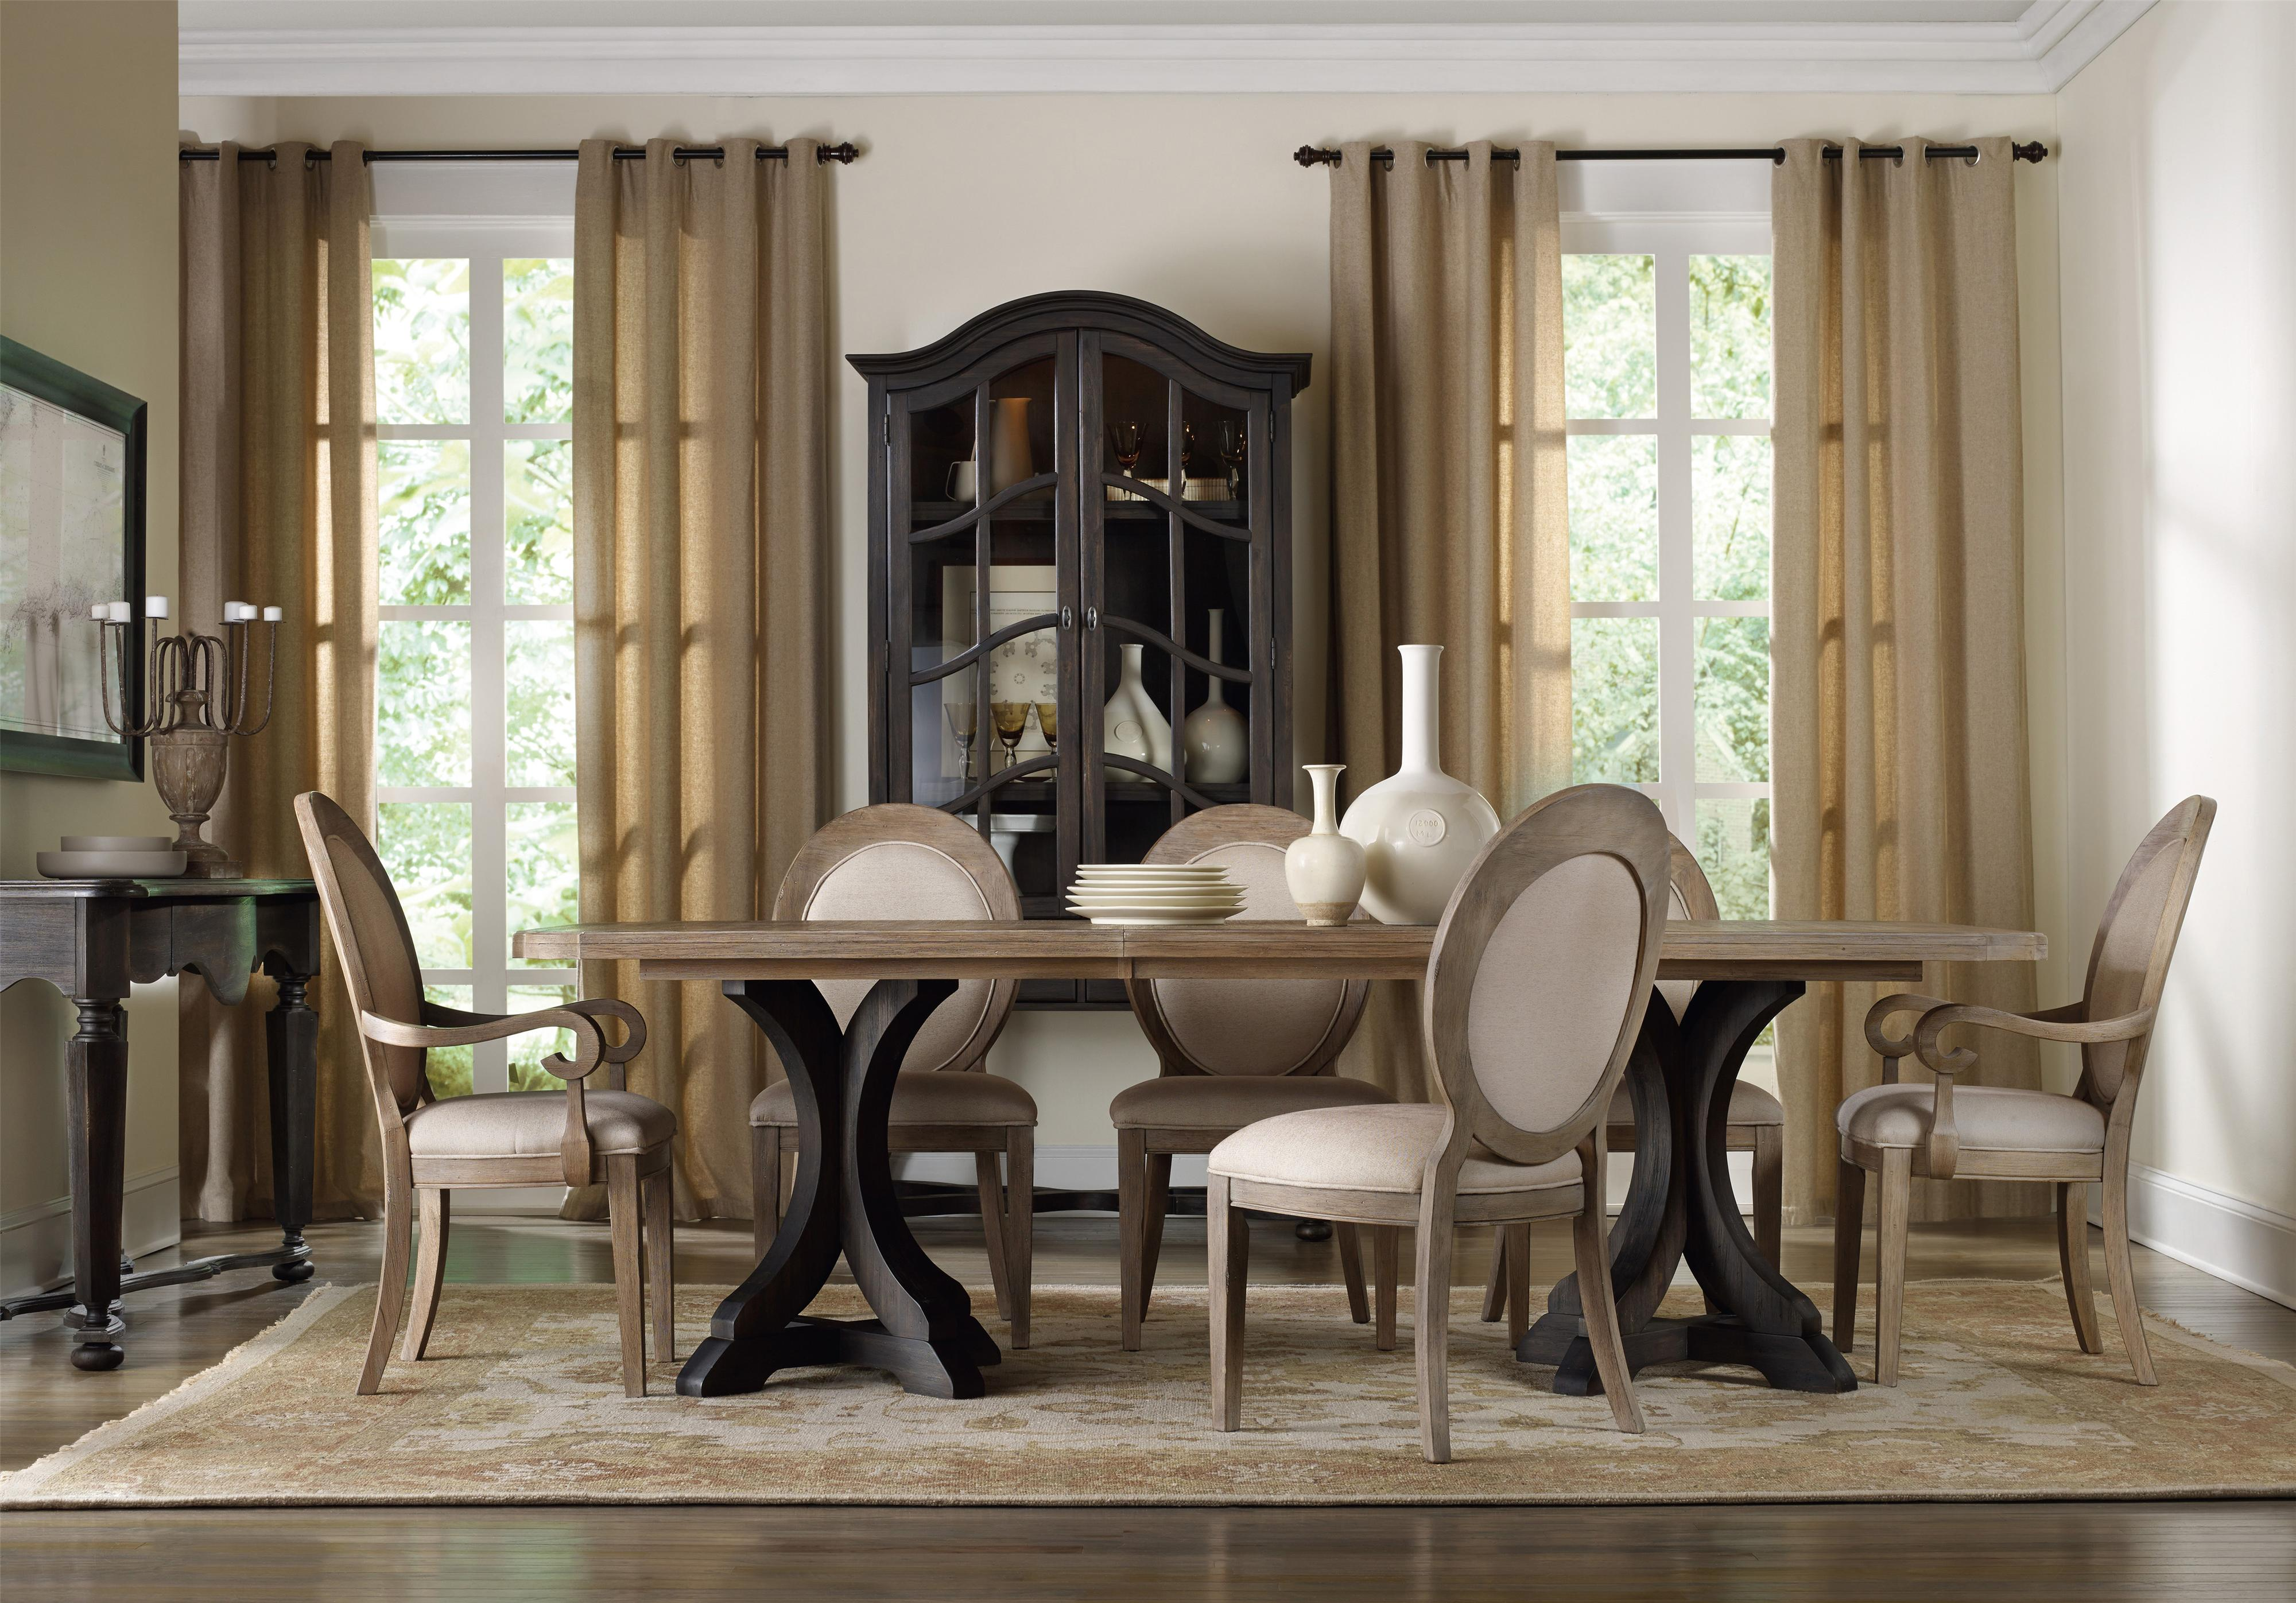 Hooker Furniture Corsica Round Dining Table With 1 18 Inch Leaf   Wayside  Furniture   Kitchen Table